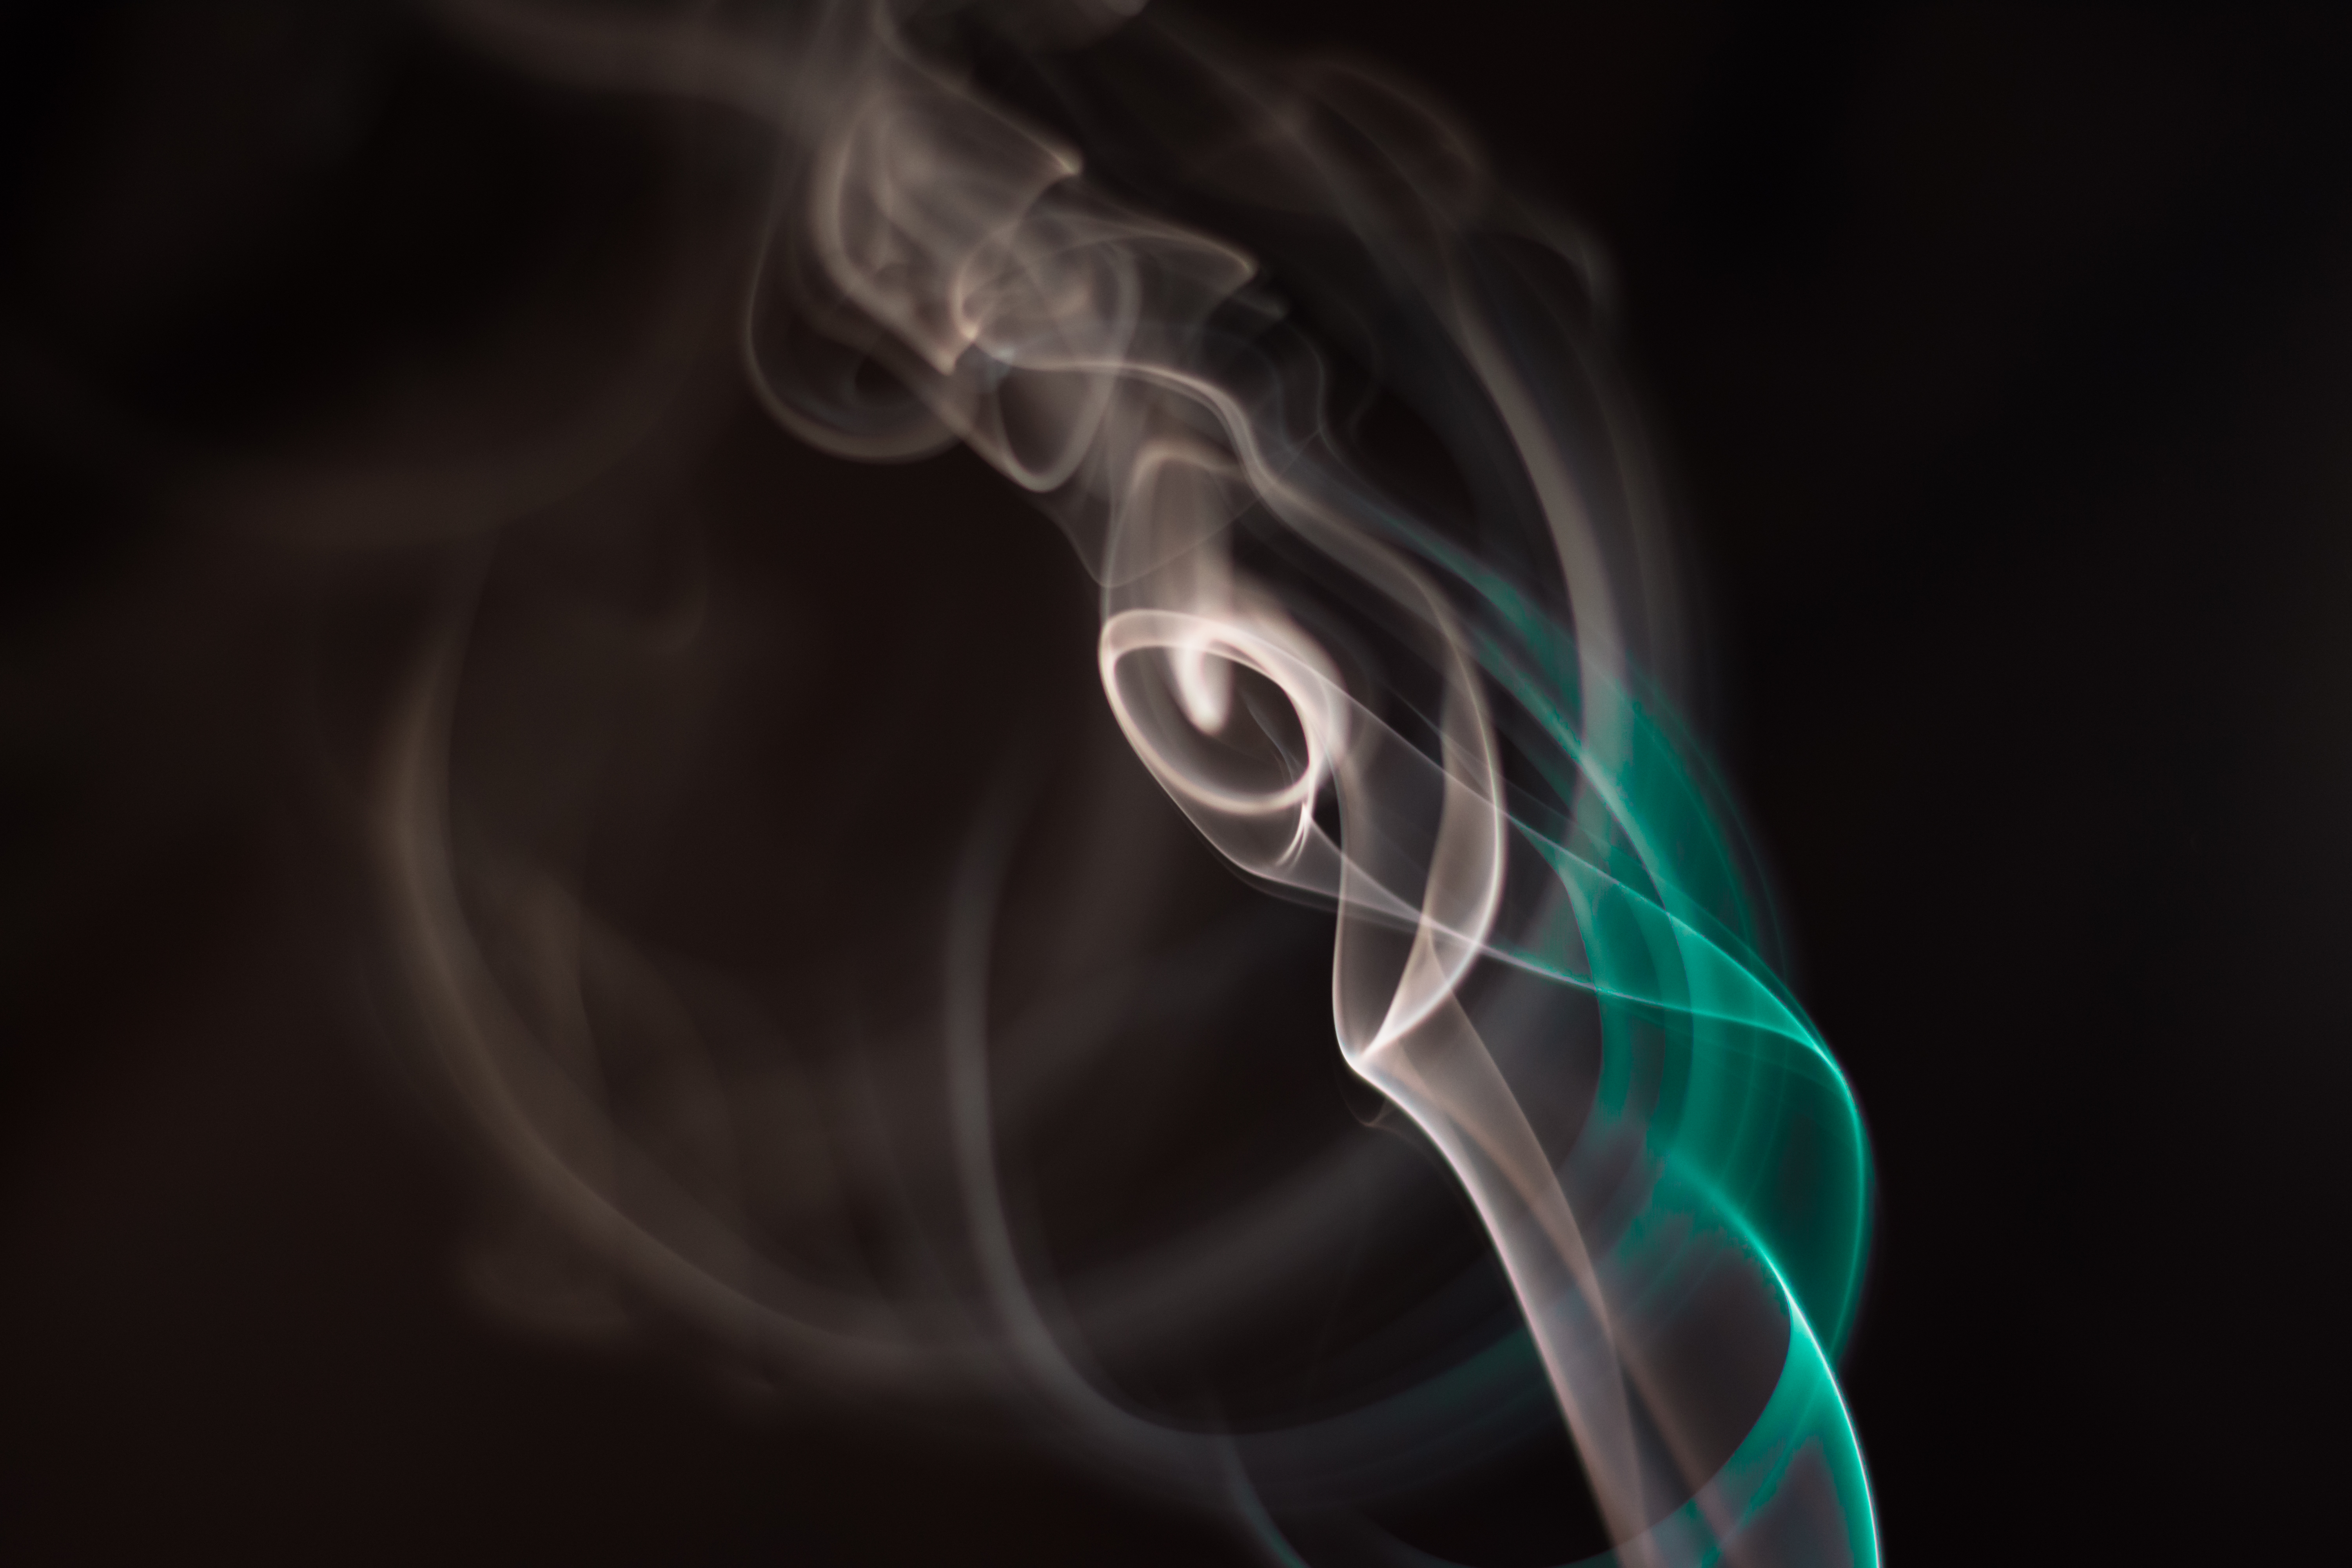 73475 download wallpaper Abstract, Colored Smoke, Coloured Smoke, Spiral, Swirling, Involute, Smoke screensavers and pictures for free